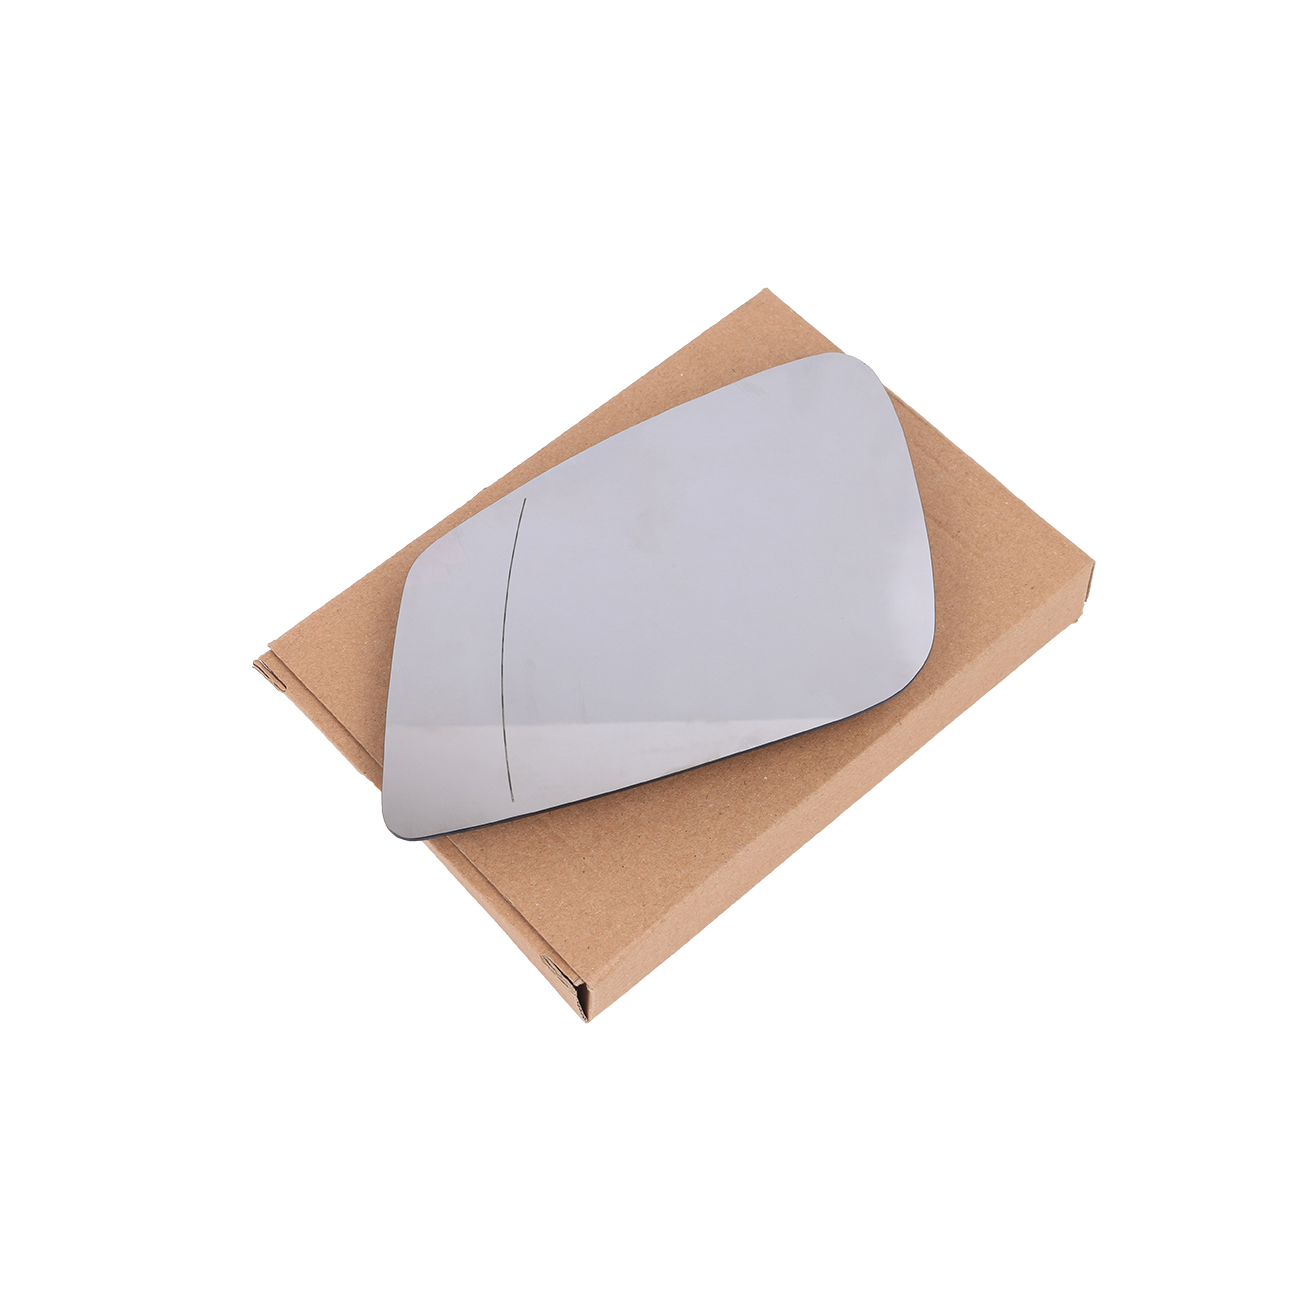 Car Side Door Heating Rearview Mirror Glass Lens For <font><b>BMW</b></font> E63 E64 F10 <font><b>F11</b></font> F18 750i 650i 535i Car Styling // image